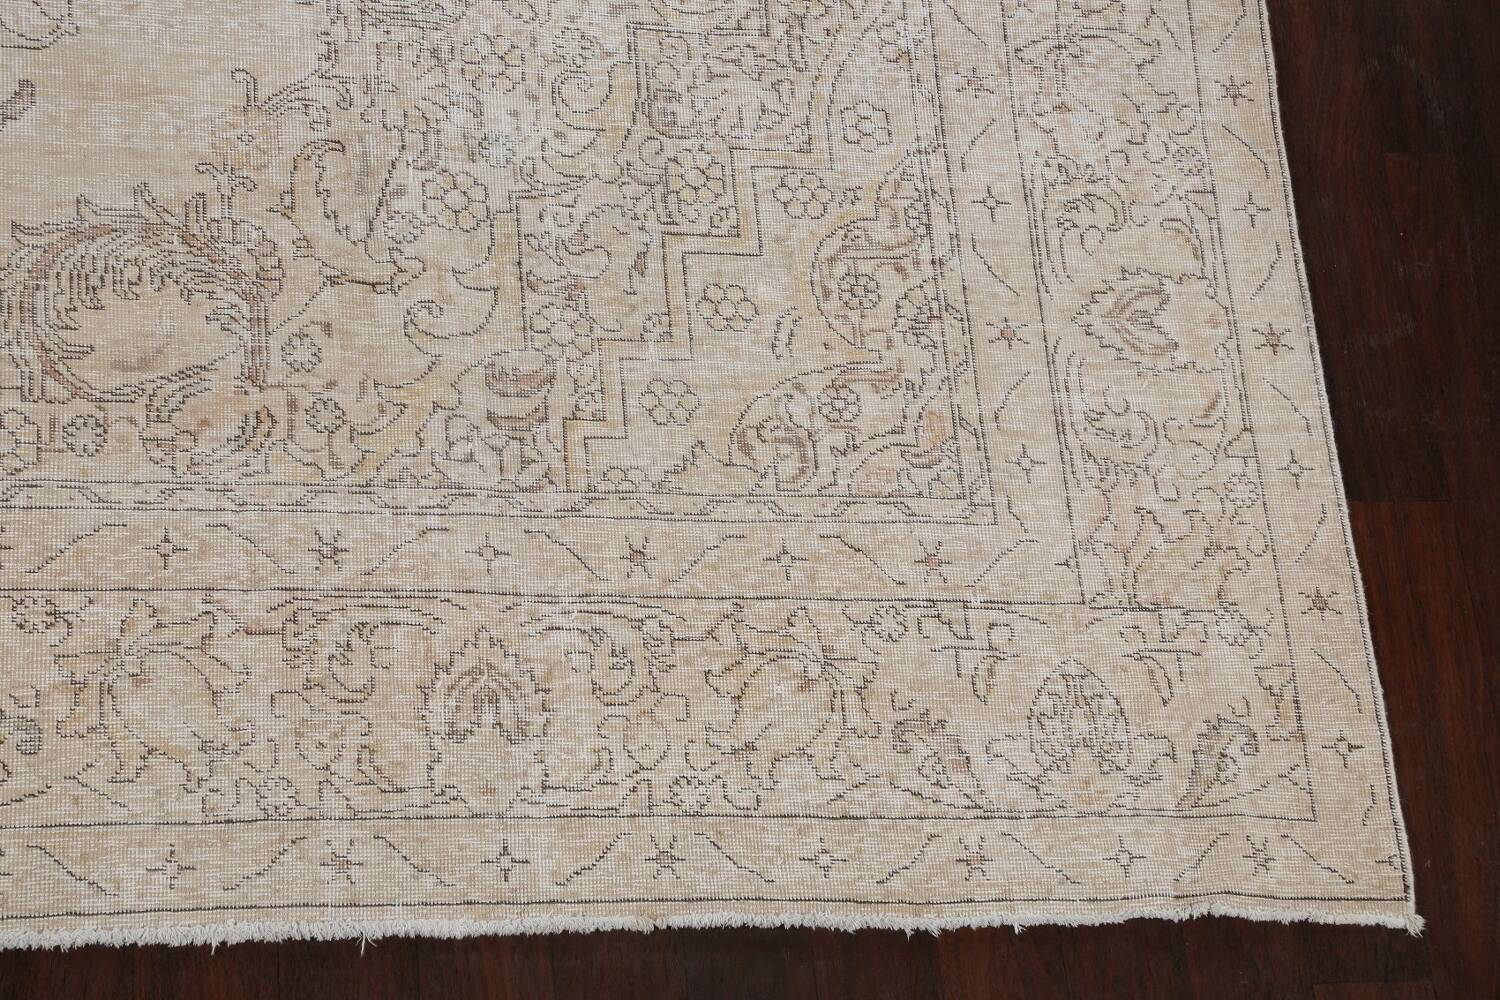 Antique Muted Distressed Tabriz Persian Area Rug 10x16 Large image 5